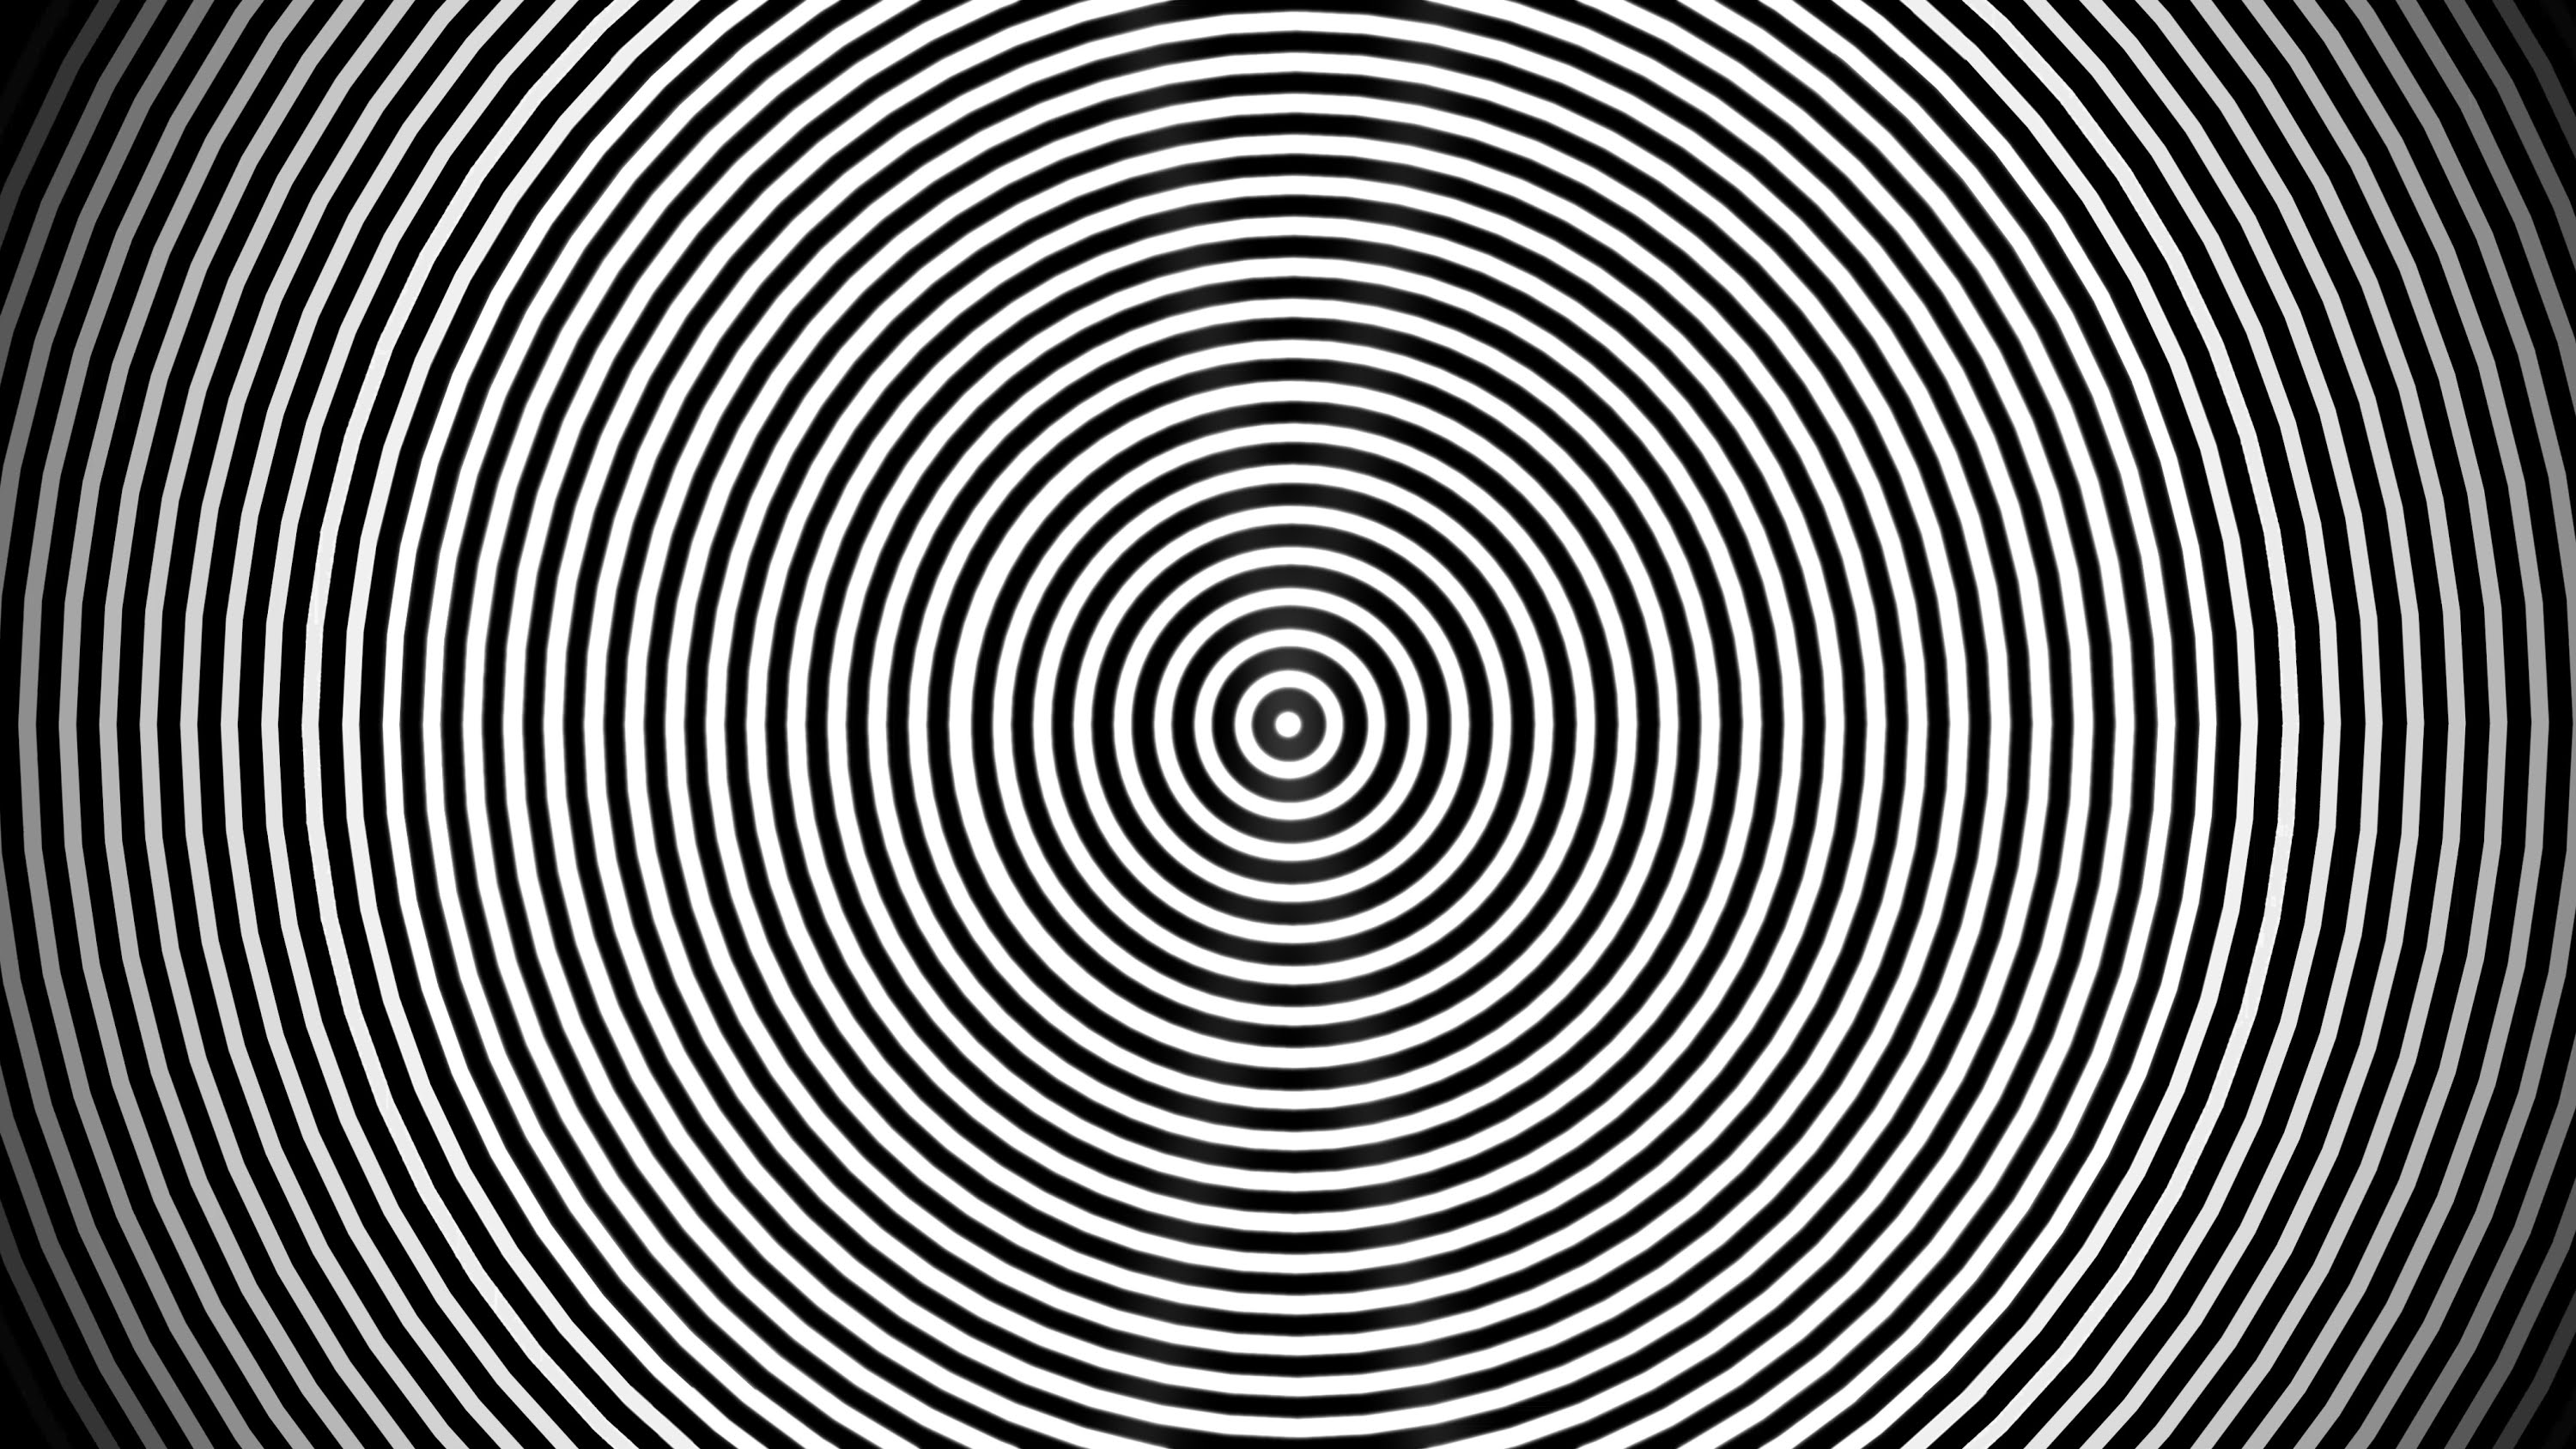 Cool Optical Illusions Pictures | www.pixshark.com ...